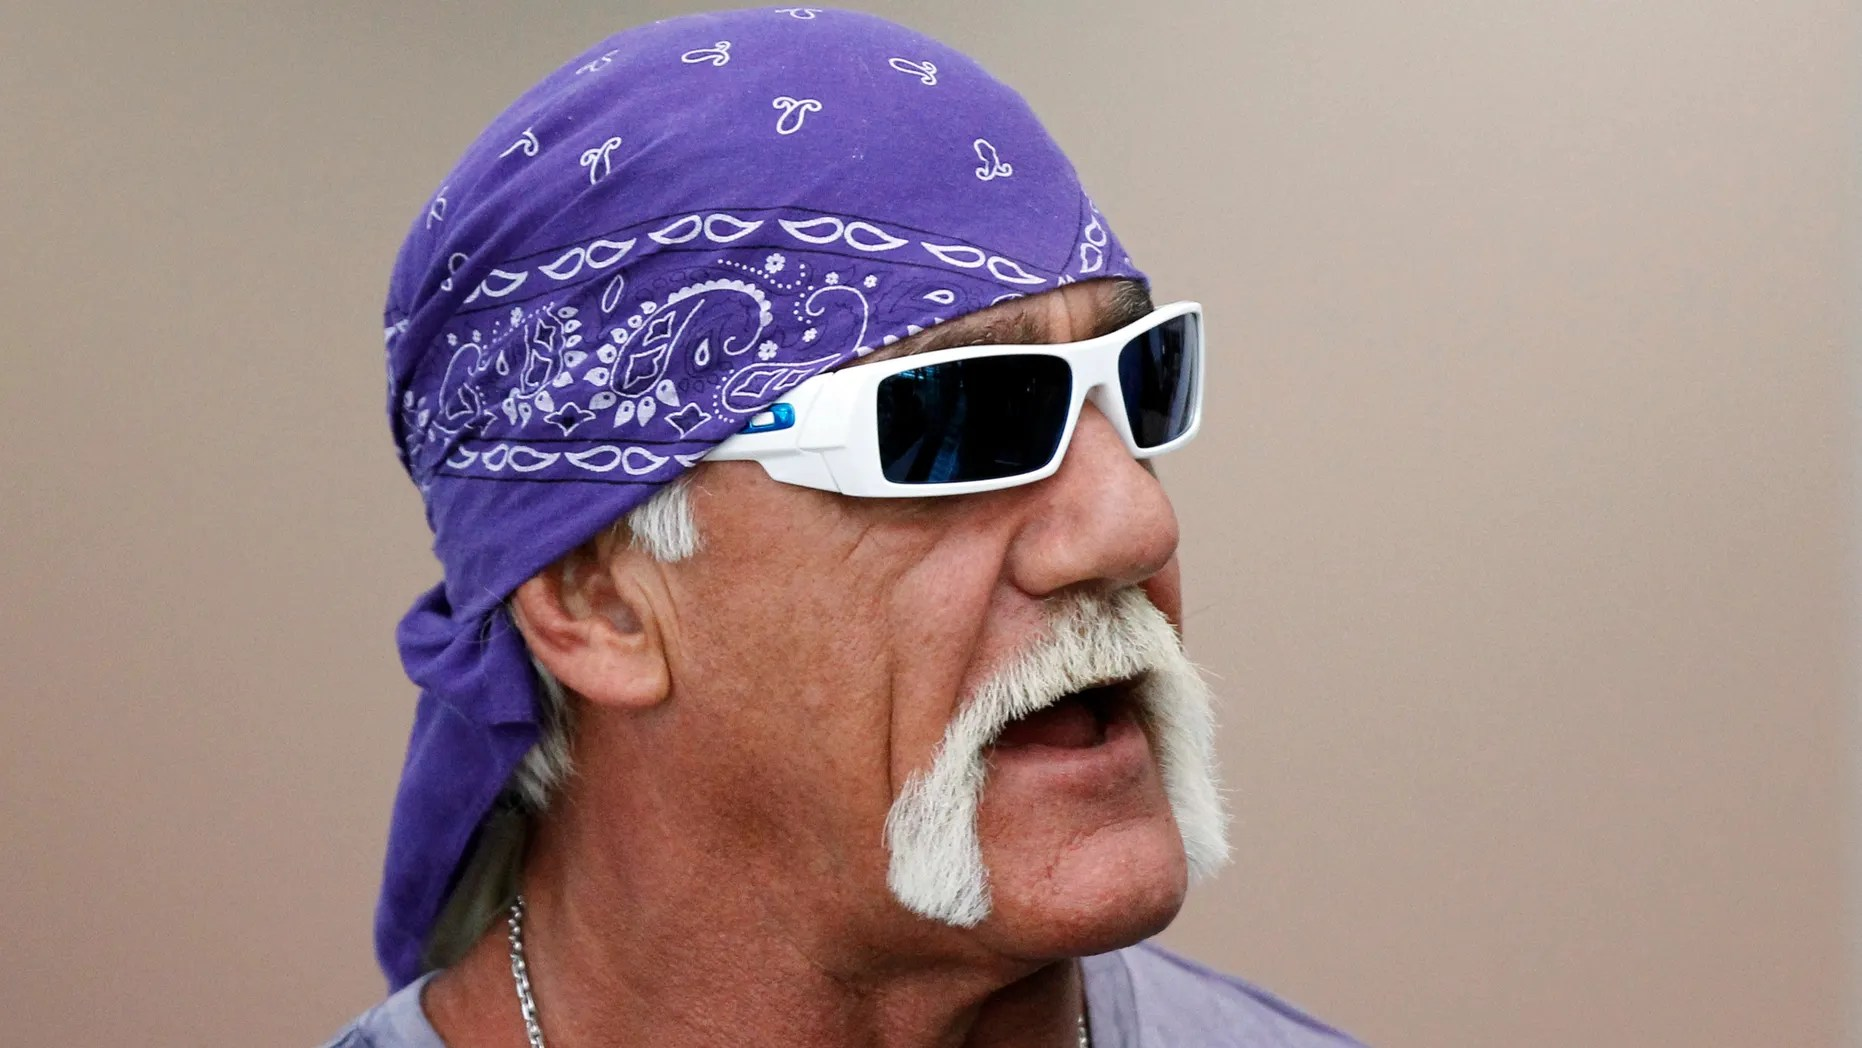 Hulk Hogan Twitter Hulk Hogan Confuses Dead Jackass Star Ryan Dunn With Living Bam